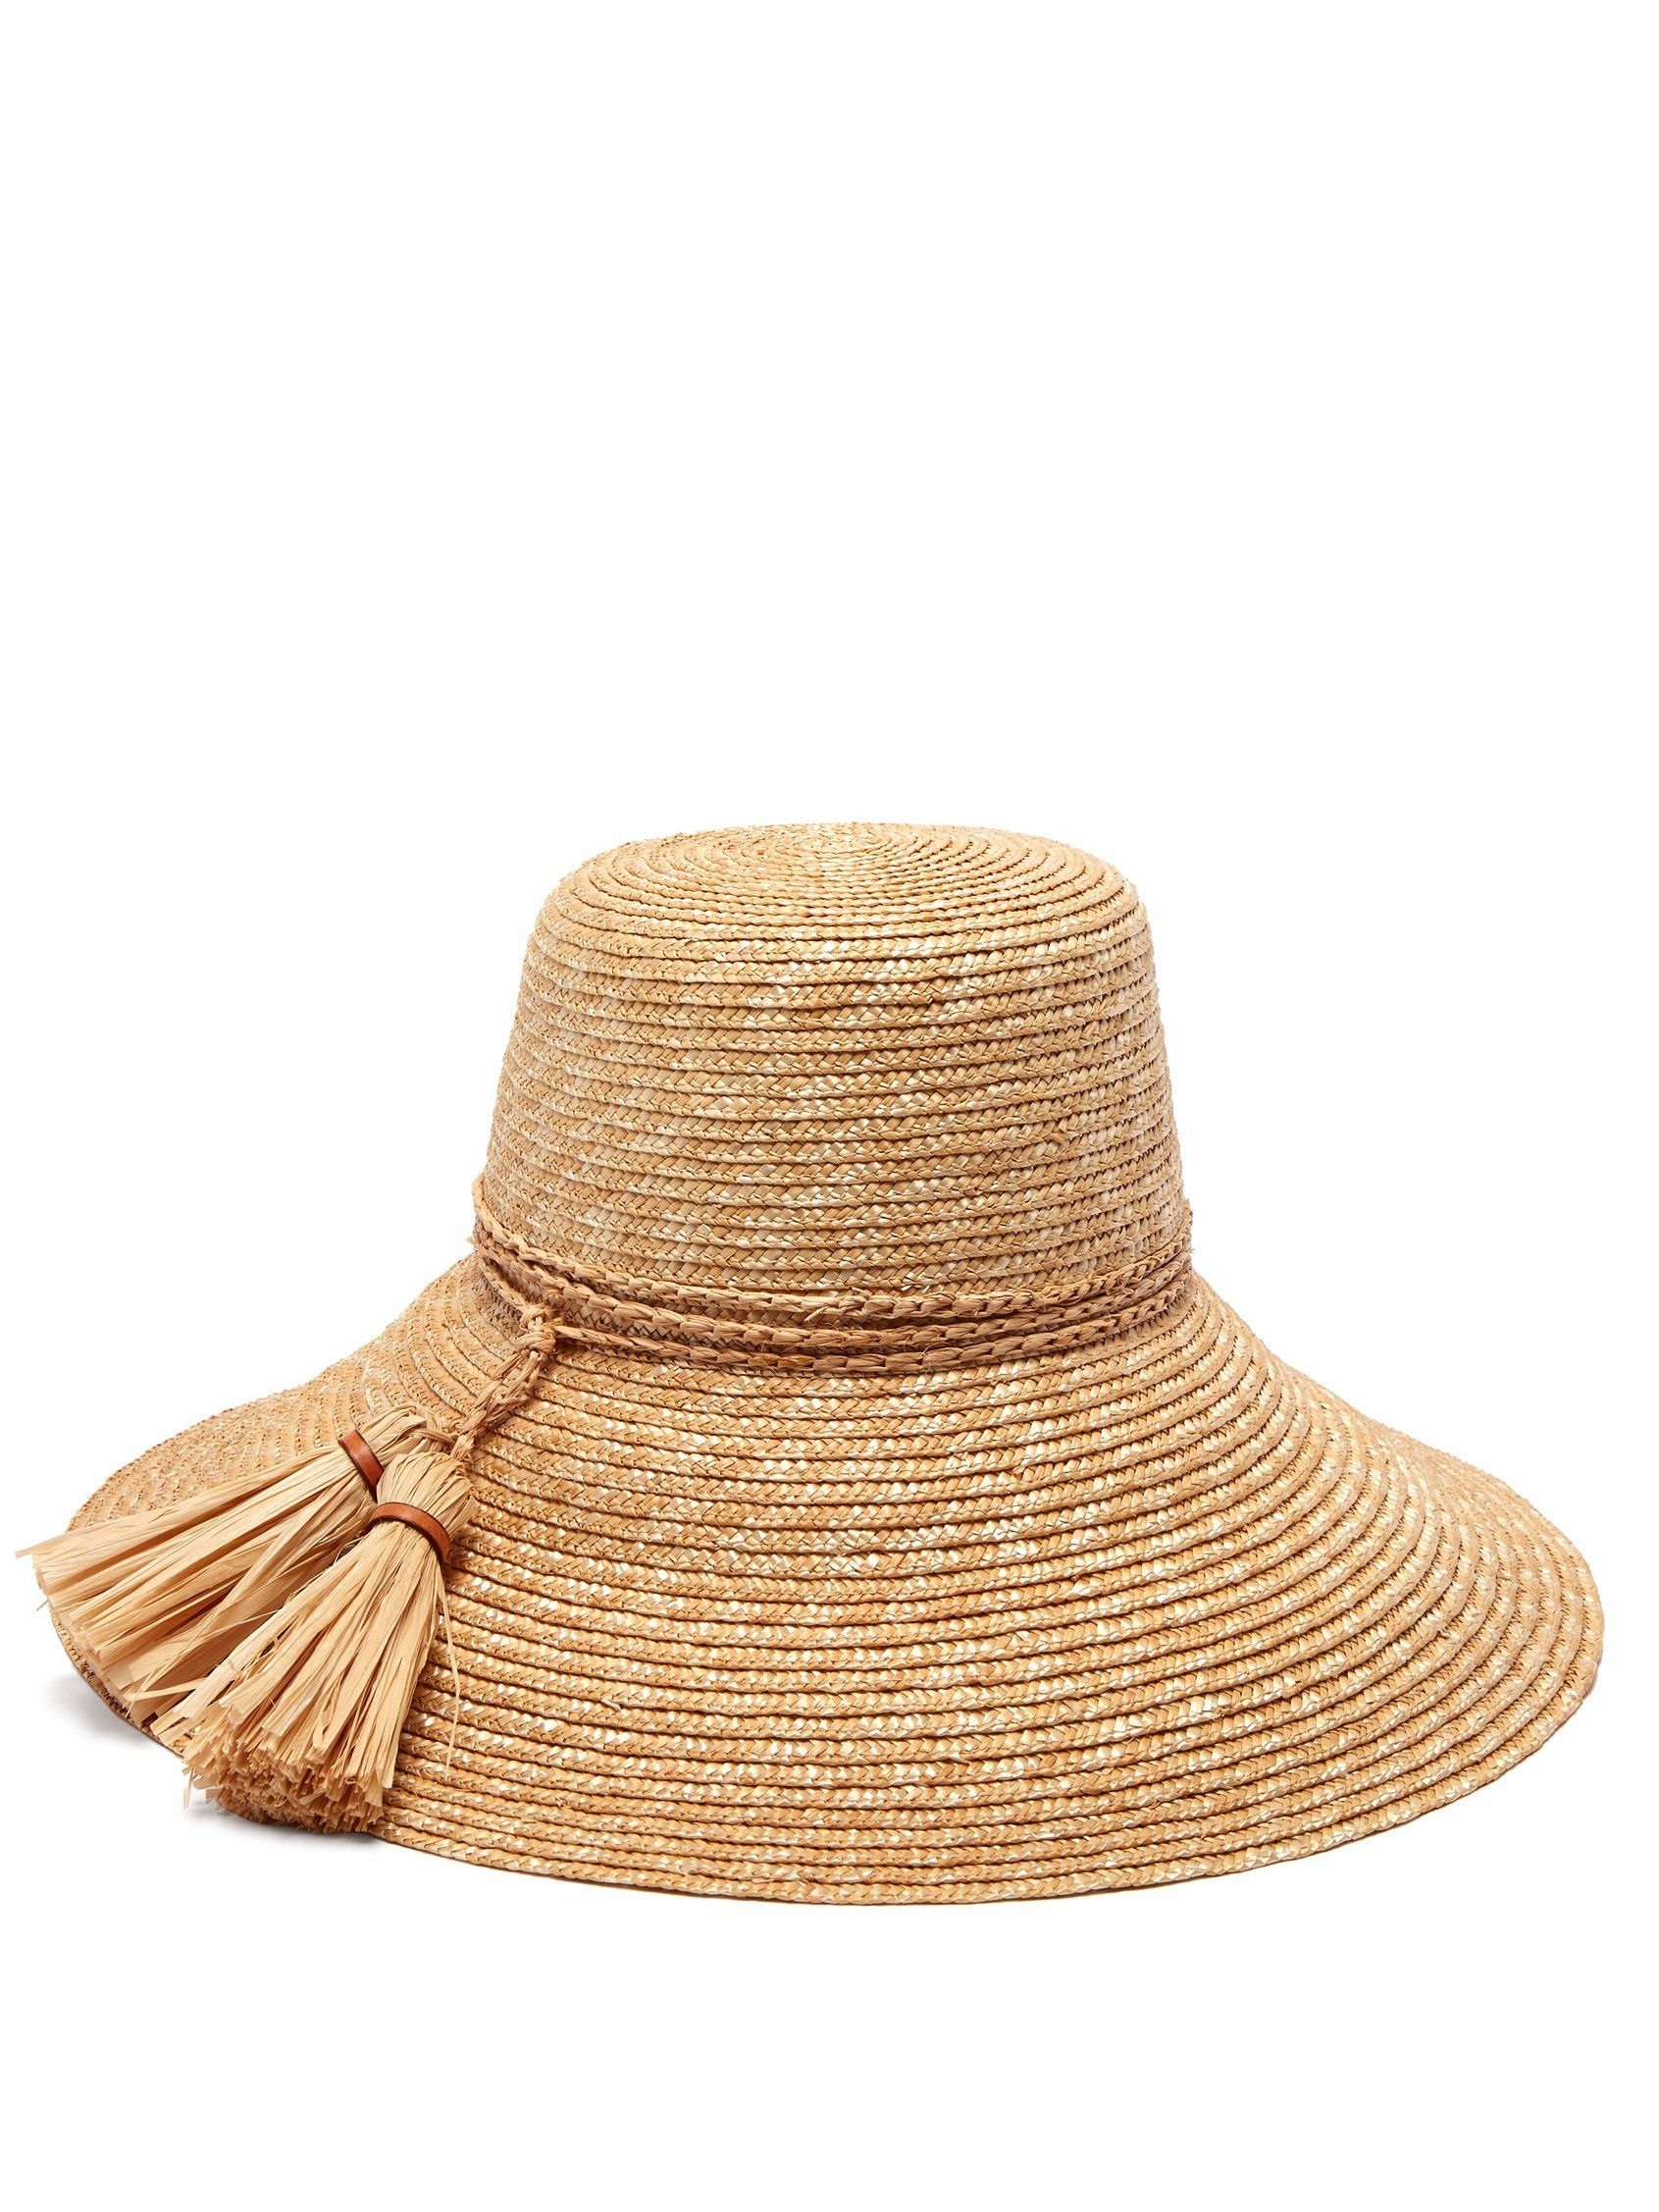 87ab71ddcd55 Lola Hats - Re-Rope Wide Brim Raffia Hat | Hats in 2019 | Hats ...